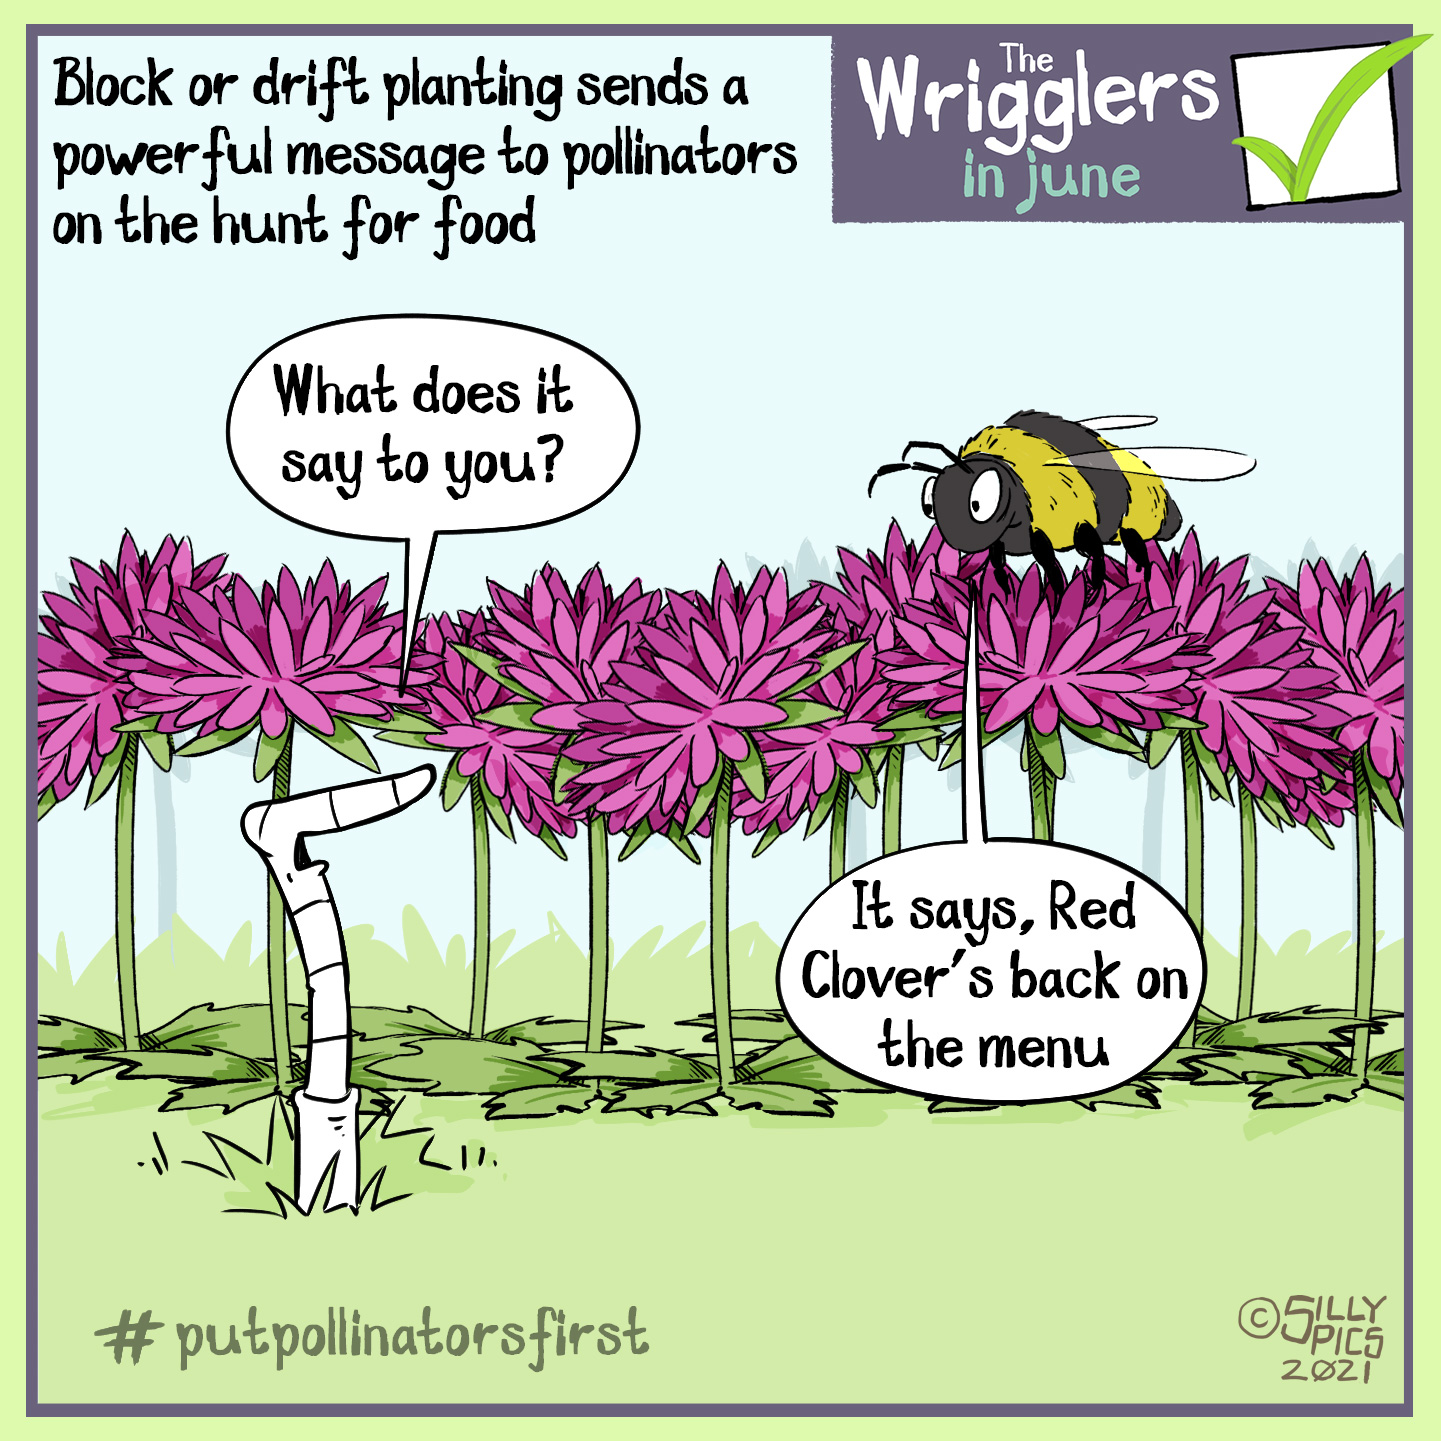 """The cartoon headline says, """"Block or drift planting sends a powerful message to pollinators on the hunt for food"""" The cartoon shows a worm talking to a bee, who is sitting on top of a bunch of flowers. The worm sys the bee, """"What does it say to you?"""" The bee answers, """"it says, Red Clover's back on the menu"""" #putpollinatorsfirst"""